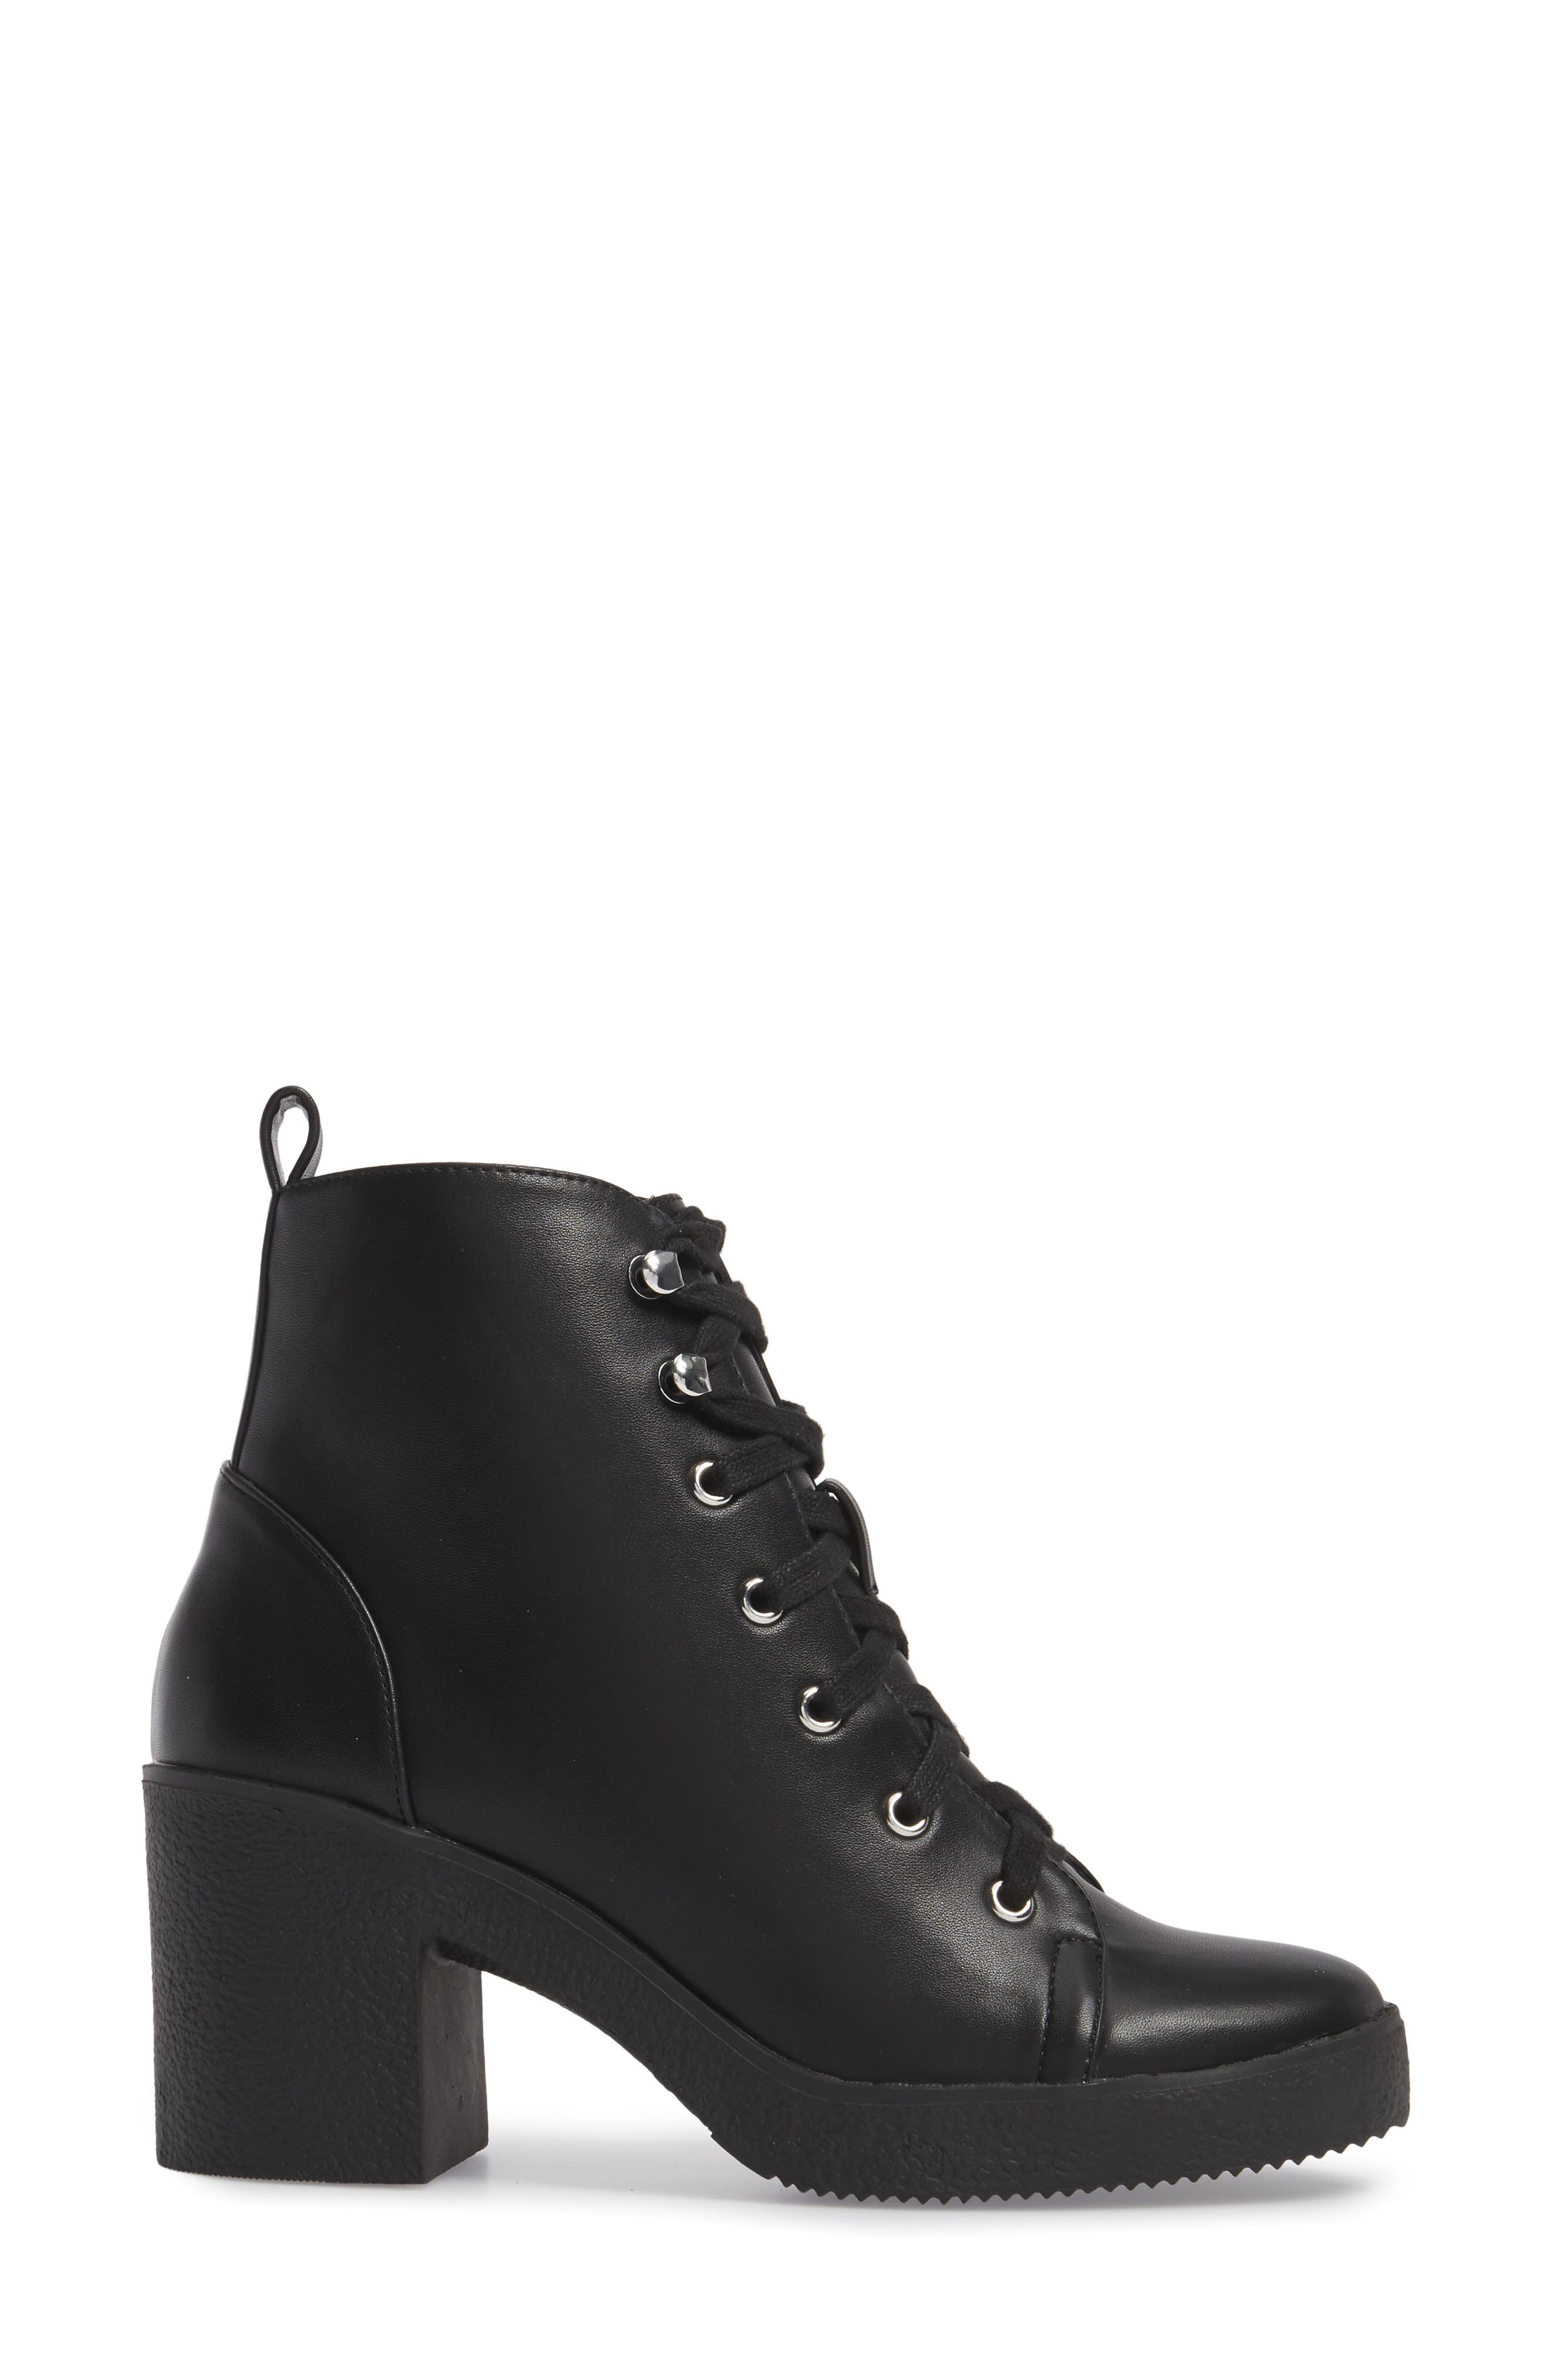 Abby Lace-Up Bootie,                             Alternate thumbnail 3, color,                             002